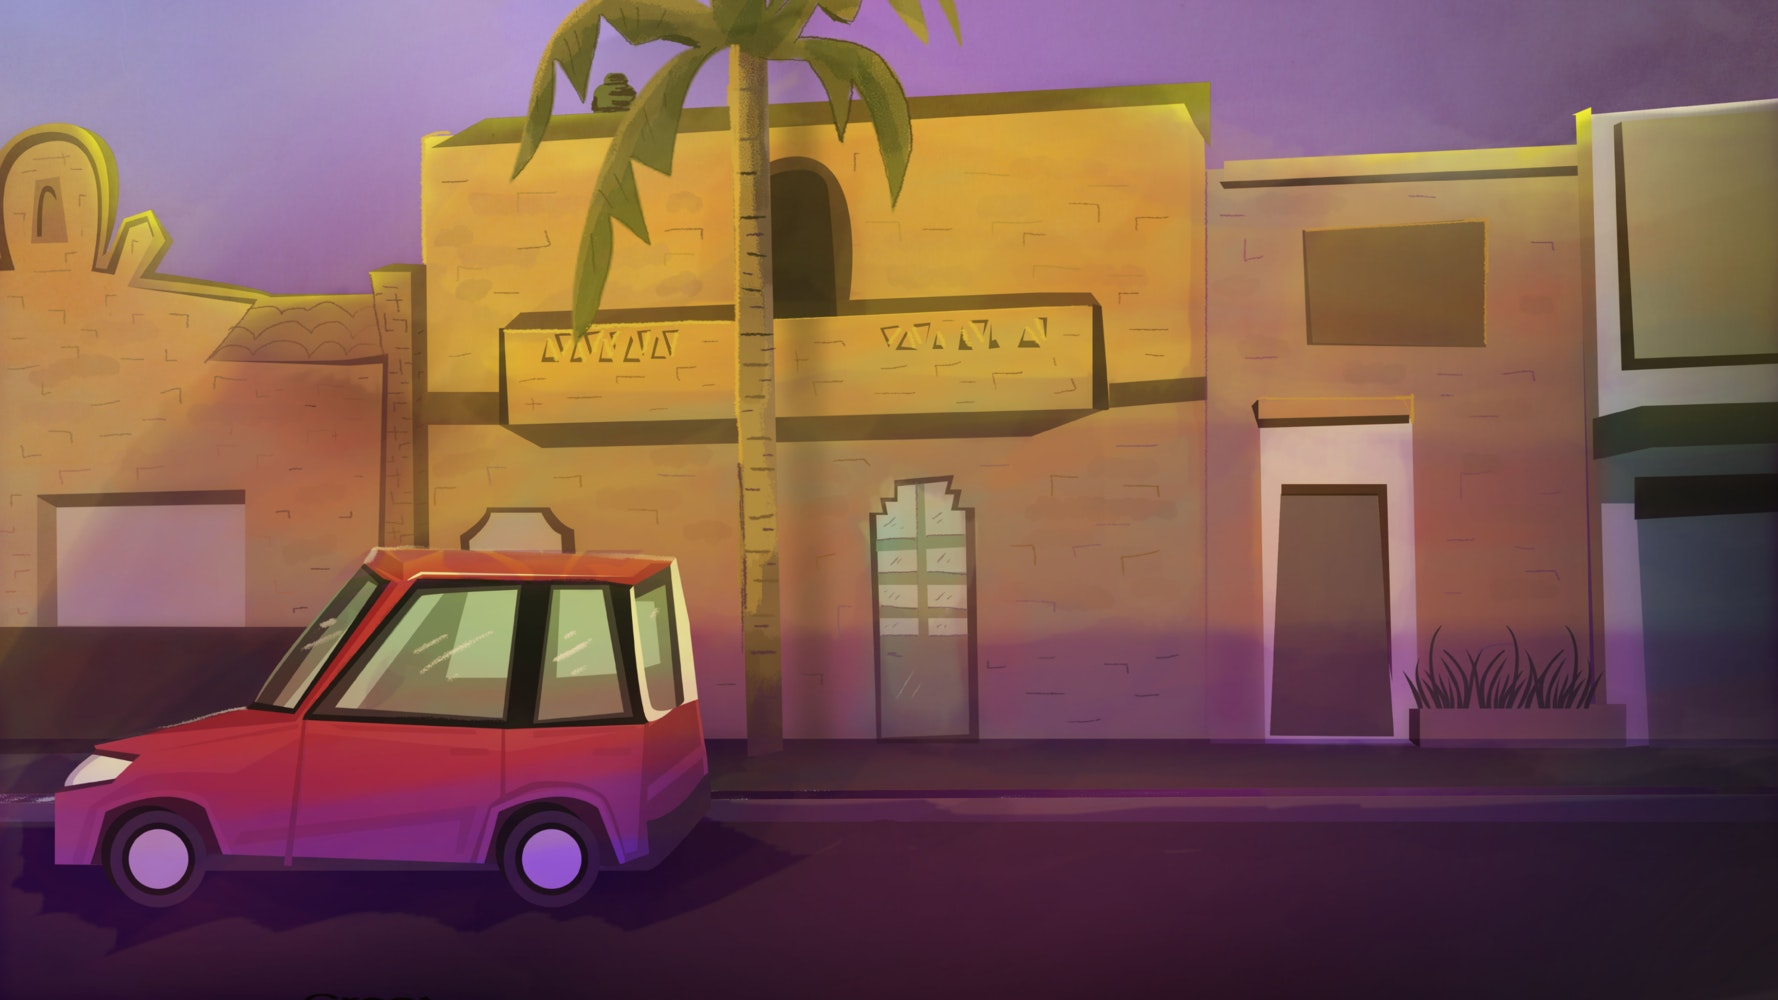 Small car parked in front of a building with a palm tree out front